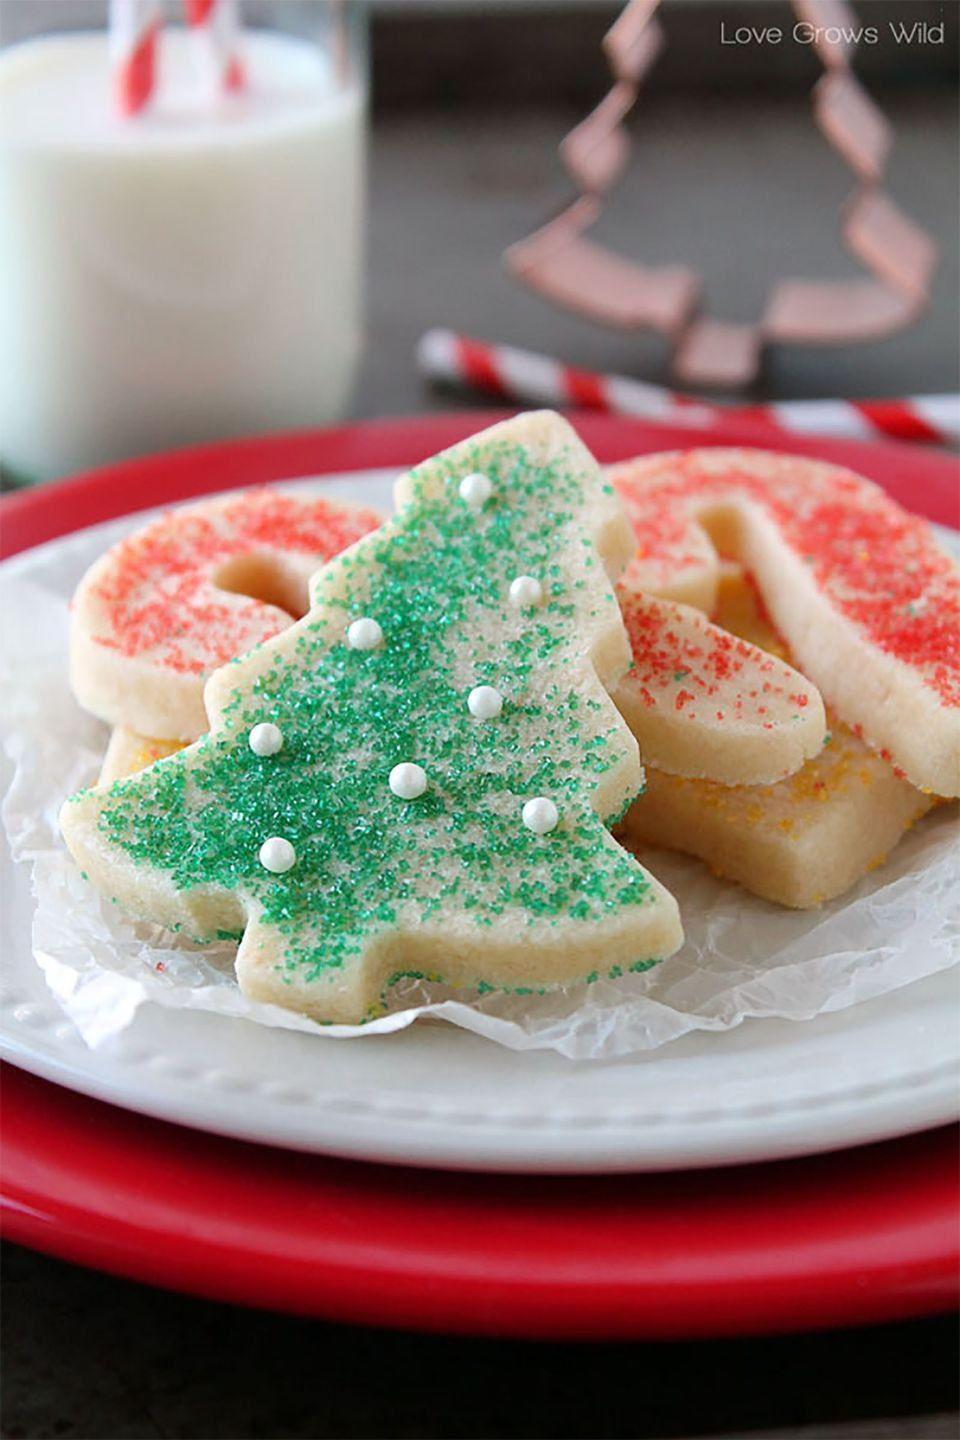 "<p>Santa won't be able to resist grabbing a few more of these delicious cookies. </p><p><strong>Get the recipe at <a href=""http://lovegrowswild.com/2013/12/perfect-sugar-cookie-cut-outs/"" rel=""nofollow noopener"" target=""_blank"" data-ylk=""slk:Love Grows Wild"" class=""link rapid-noclick-resp"">Love Grows Wild</a>.</strong></p>"